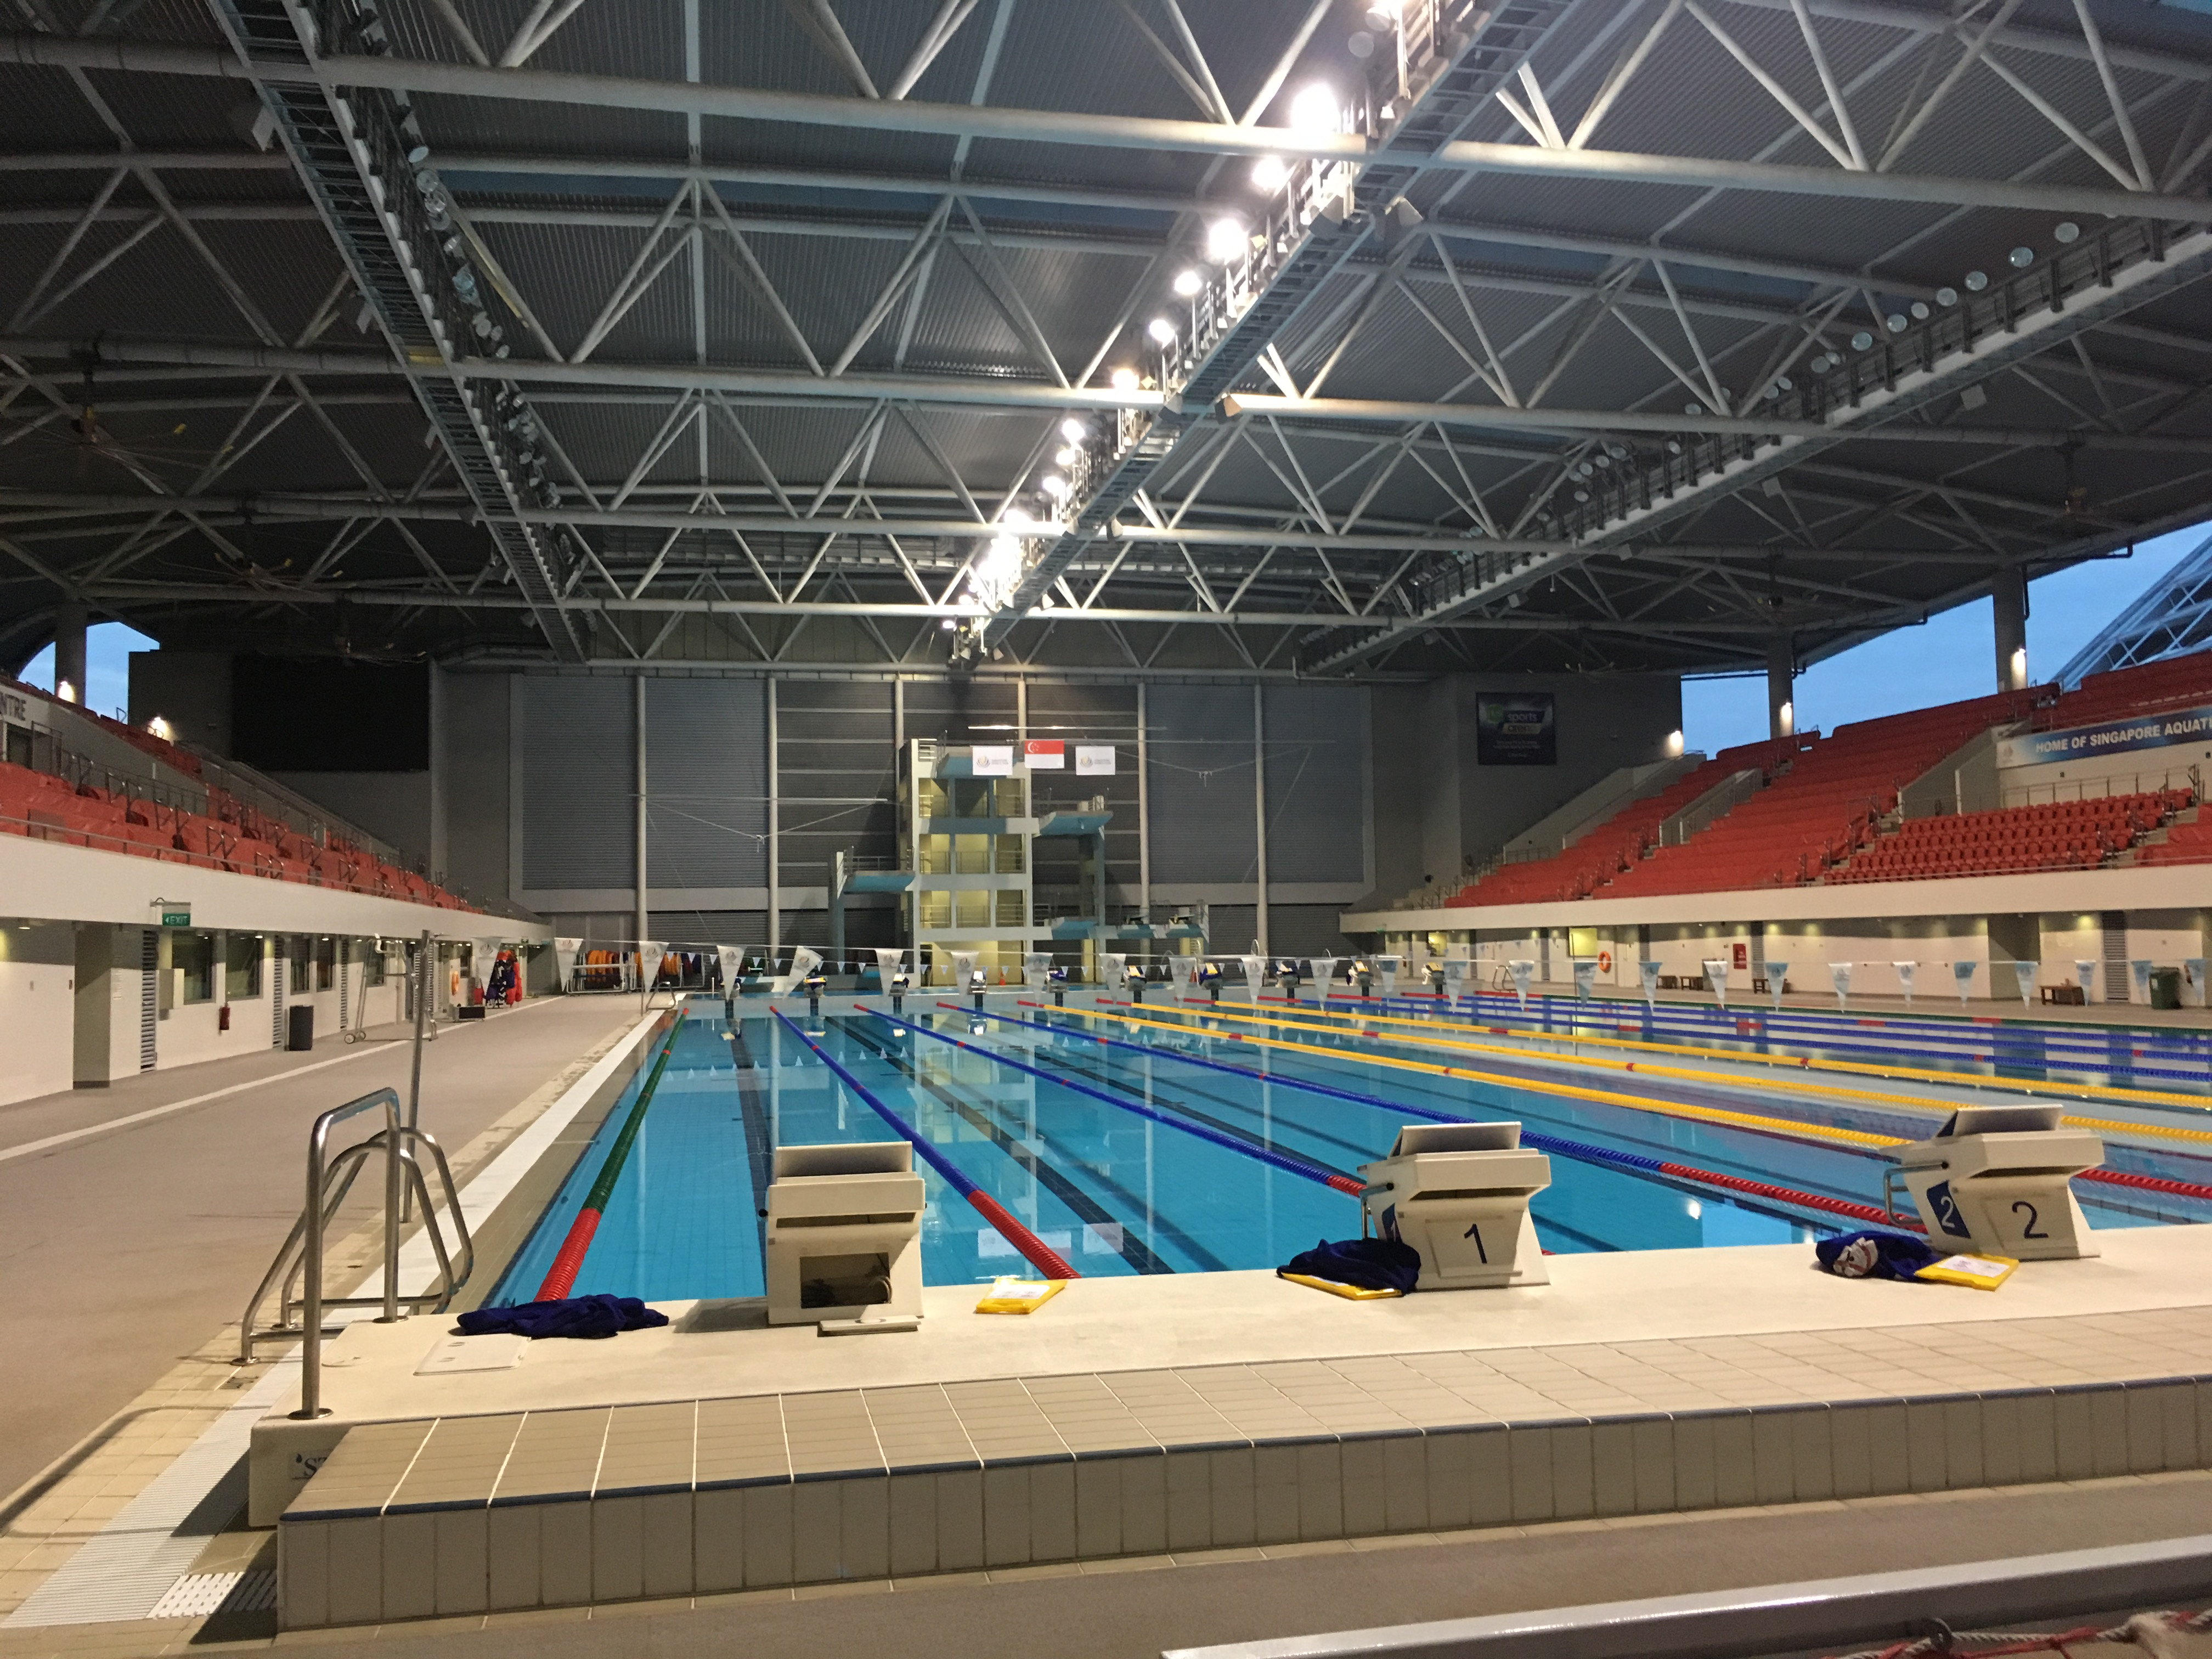 0370 - OCBC Aquatic Centre Competition Pool - Singapore